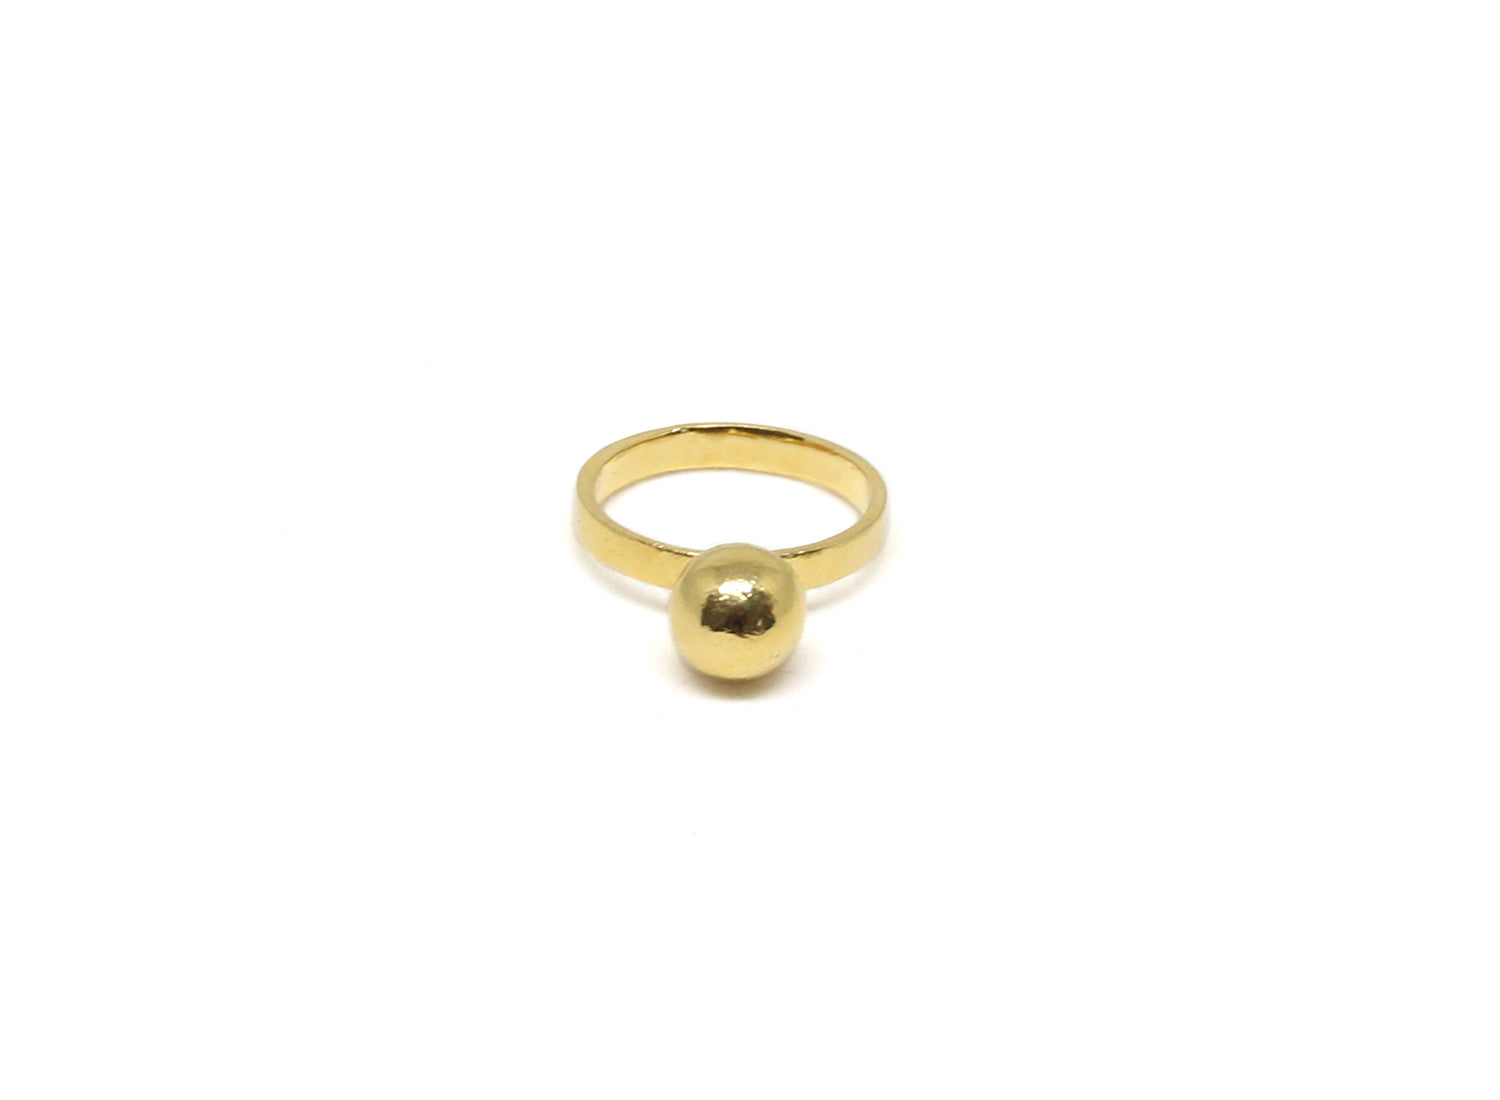 llayers jewelry ring moon sphere solar gold bague minimale or sphere boule lune